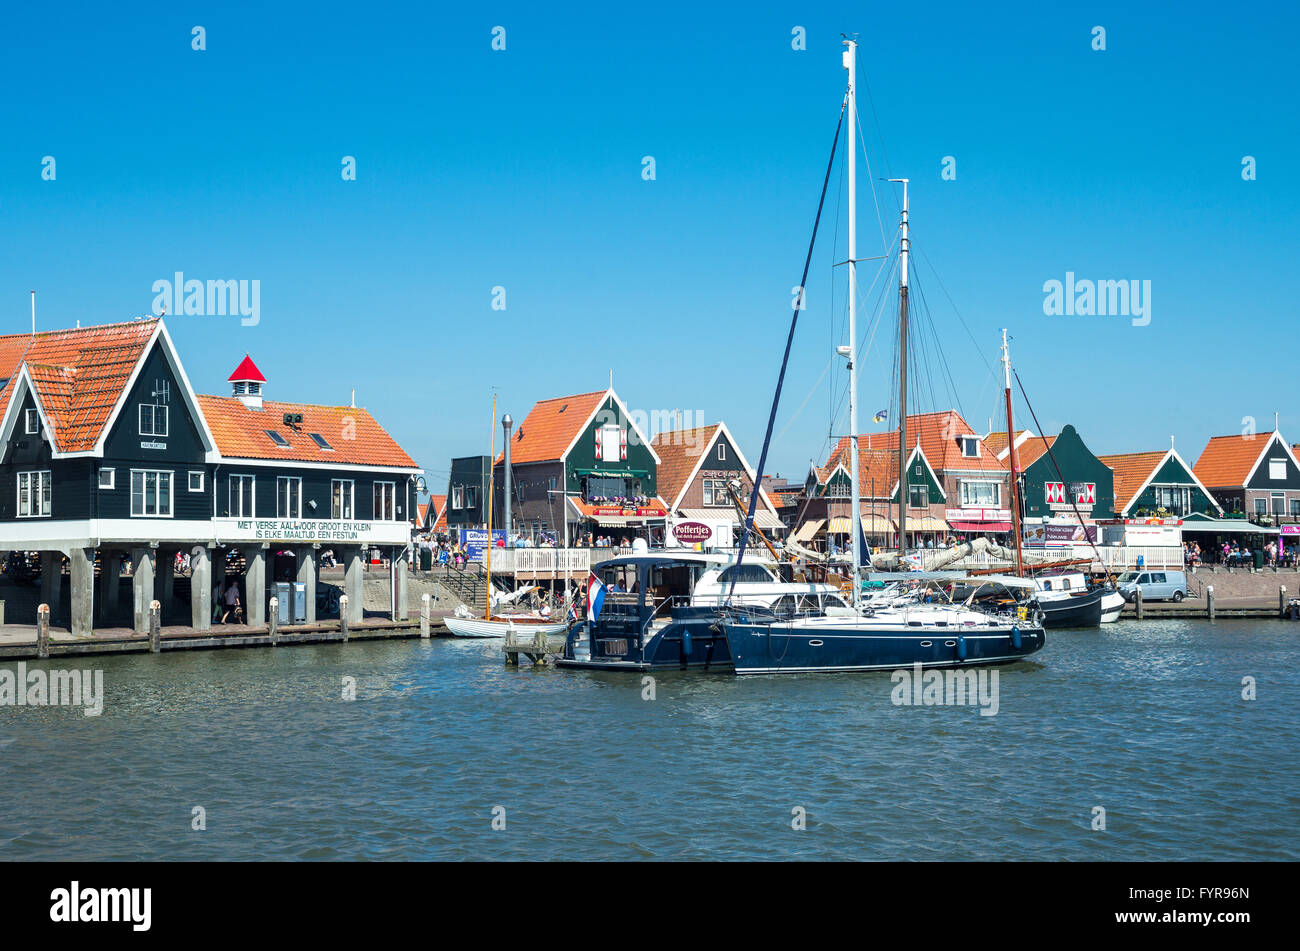 Amsterdam, Waterland district, Volendam, the harbour in front of the town center Stock Photo